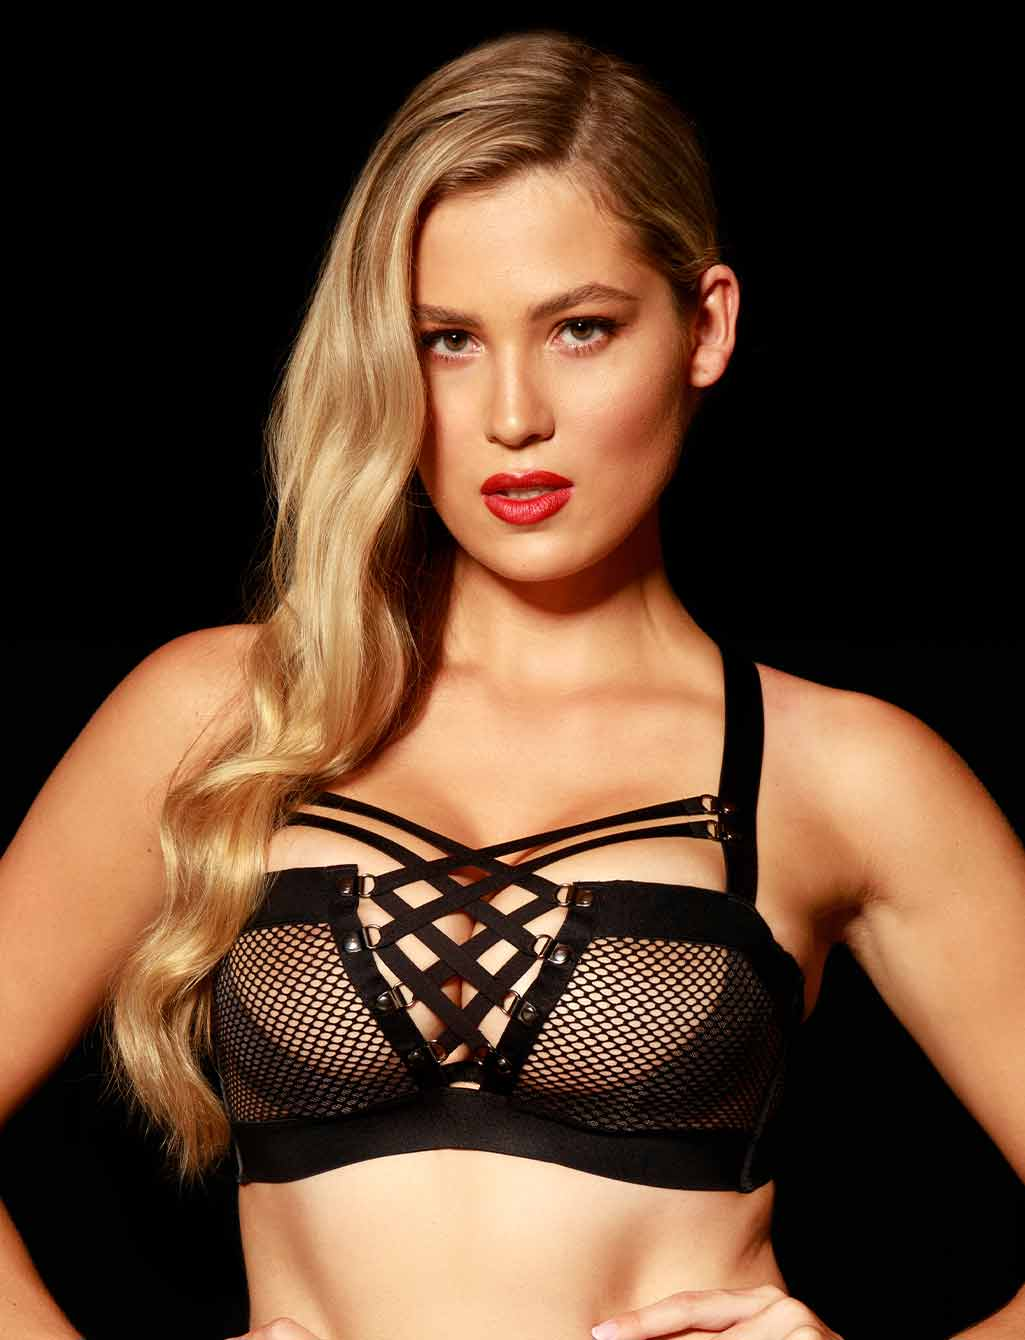 Courtney Black Push Up Bra | Shop Sexy Lingerie Honey Birdette